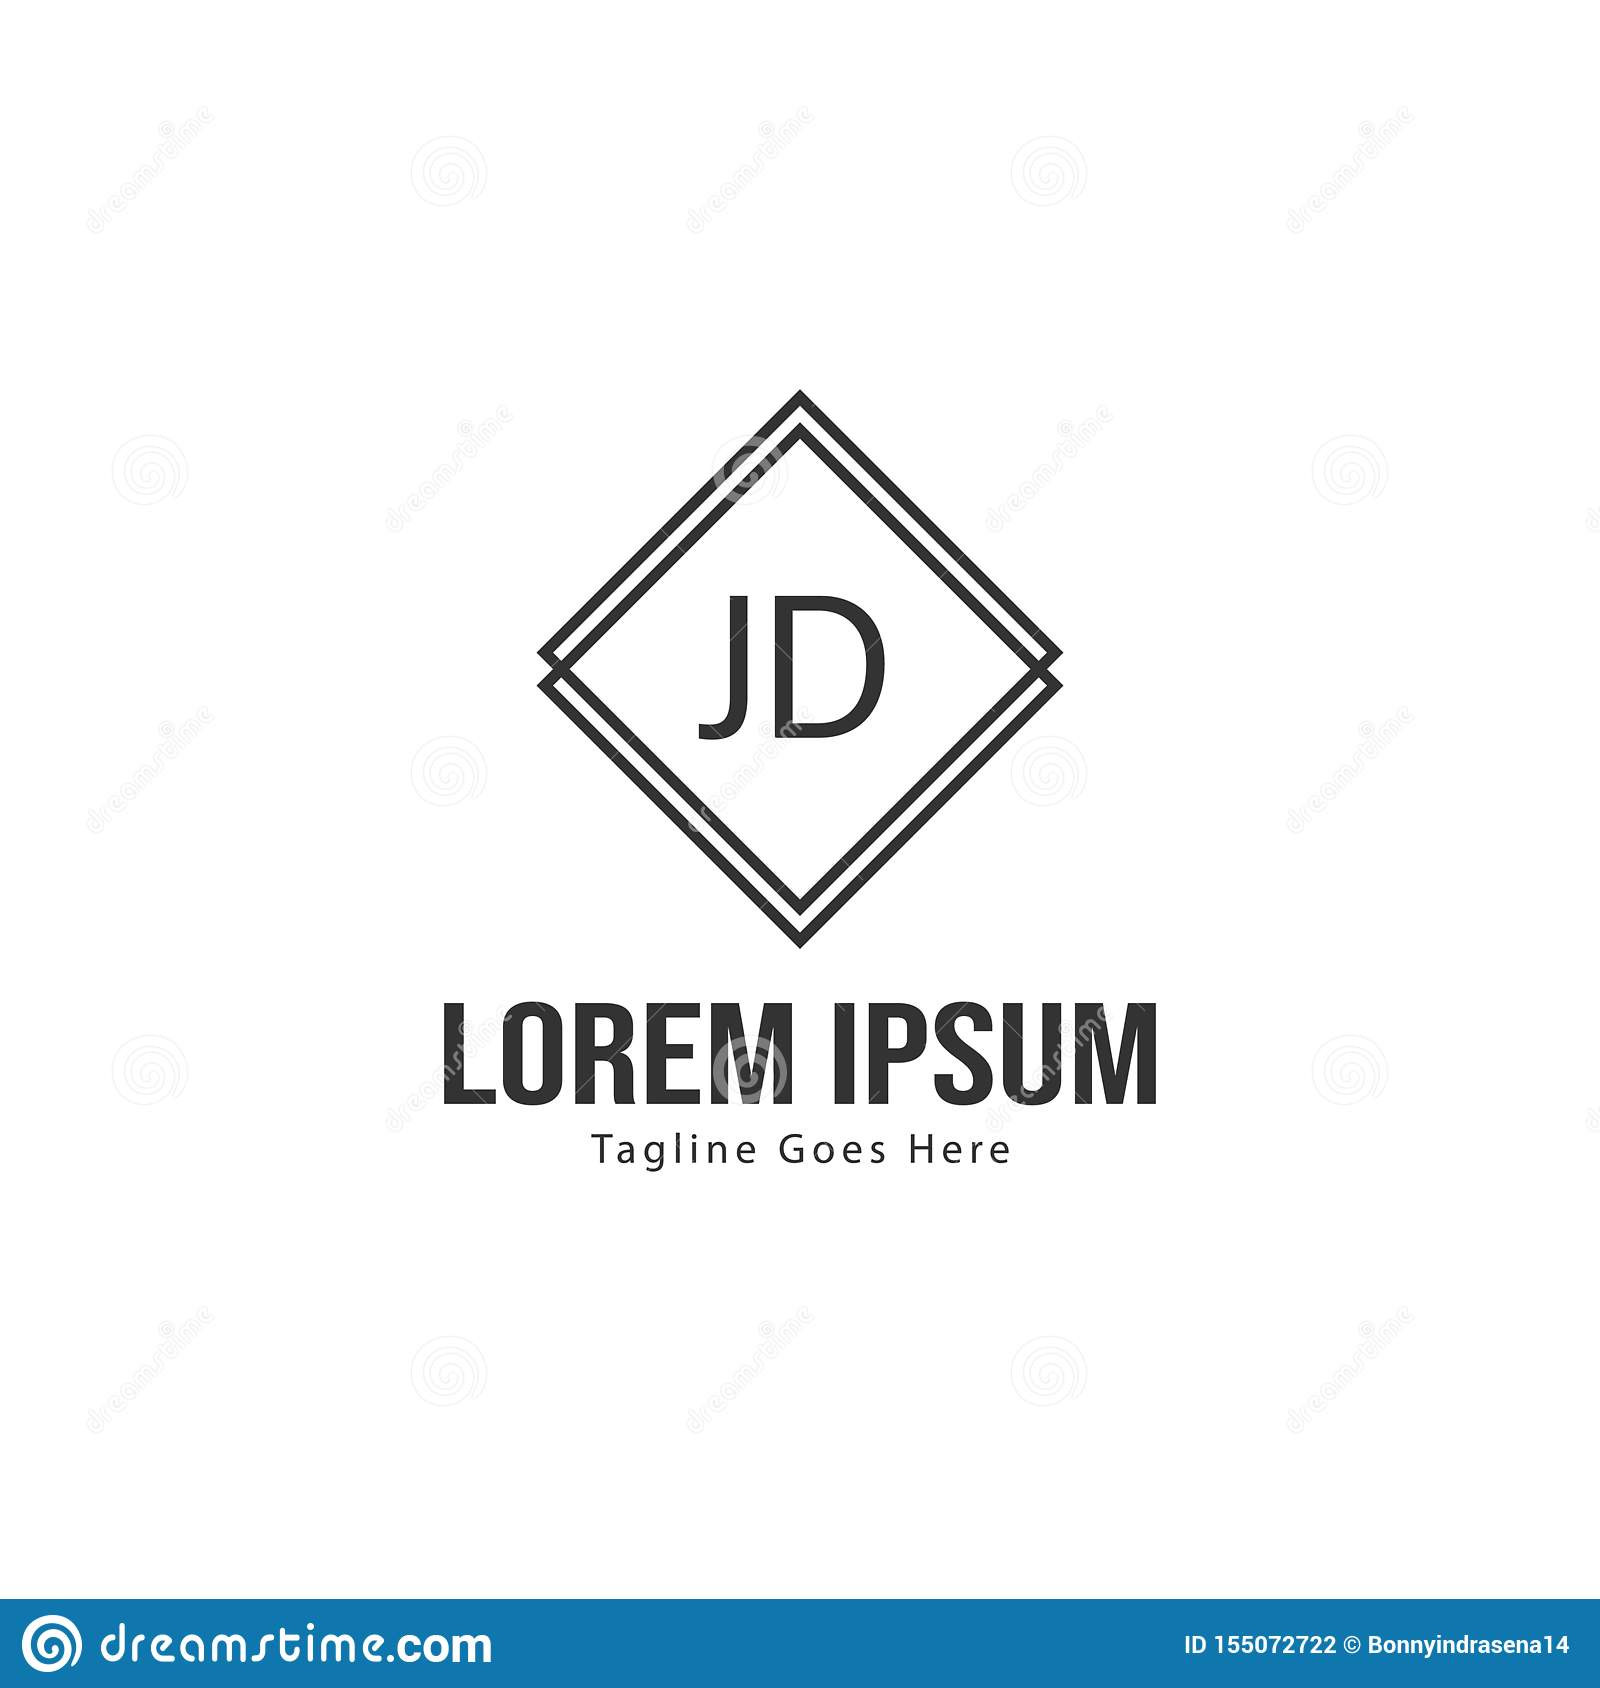 initial jd logo template with modern frame minimalist jd letter logo vector illustration stock vector illustration of vintage text 155072722 dreamstime com